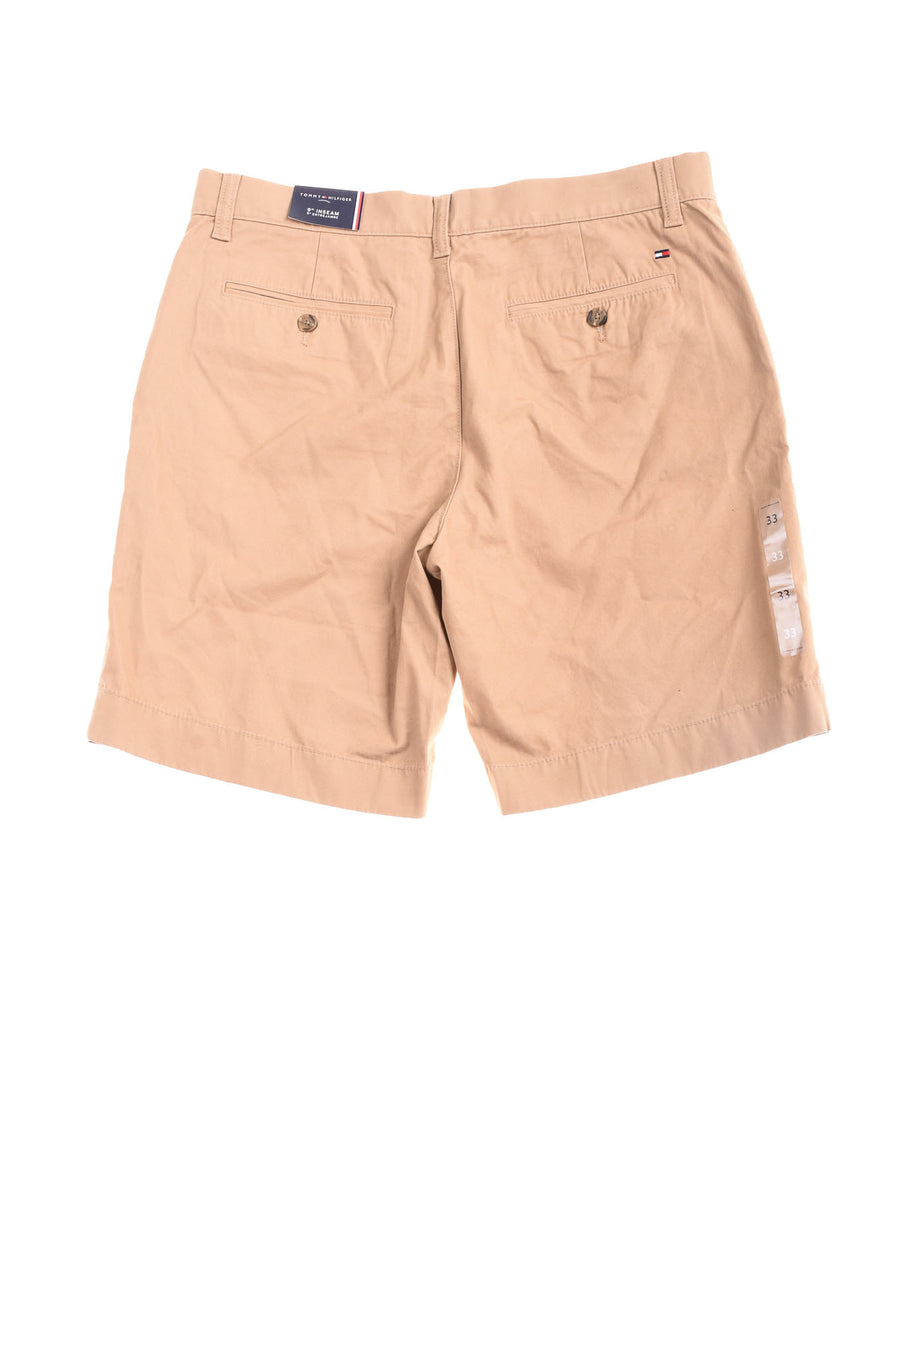 NEW Tommy Hilfiger Men's Shorts 33 Khaki